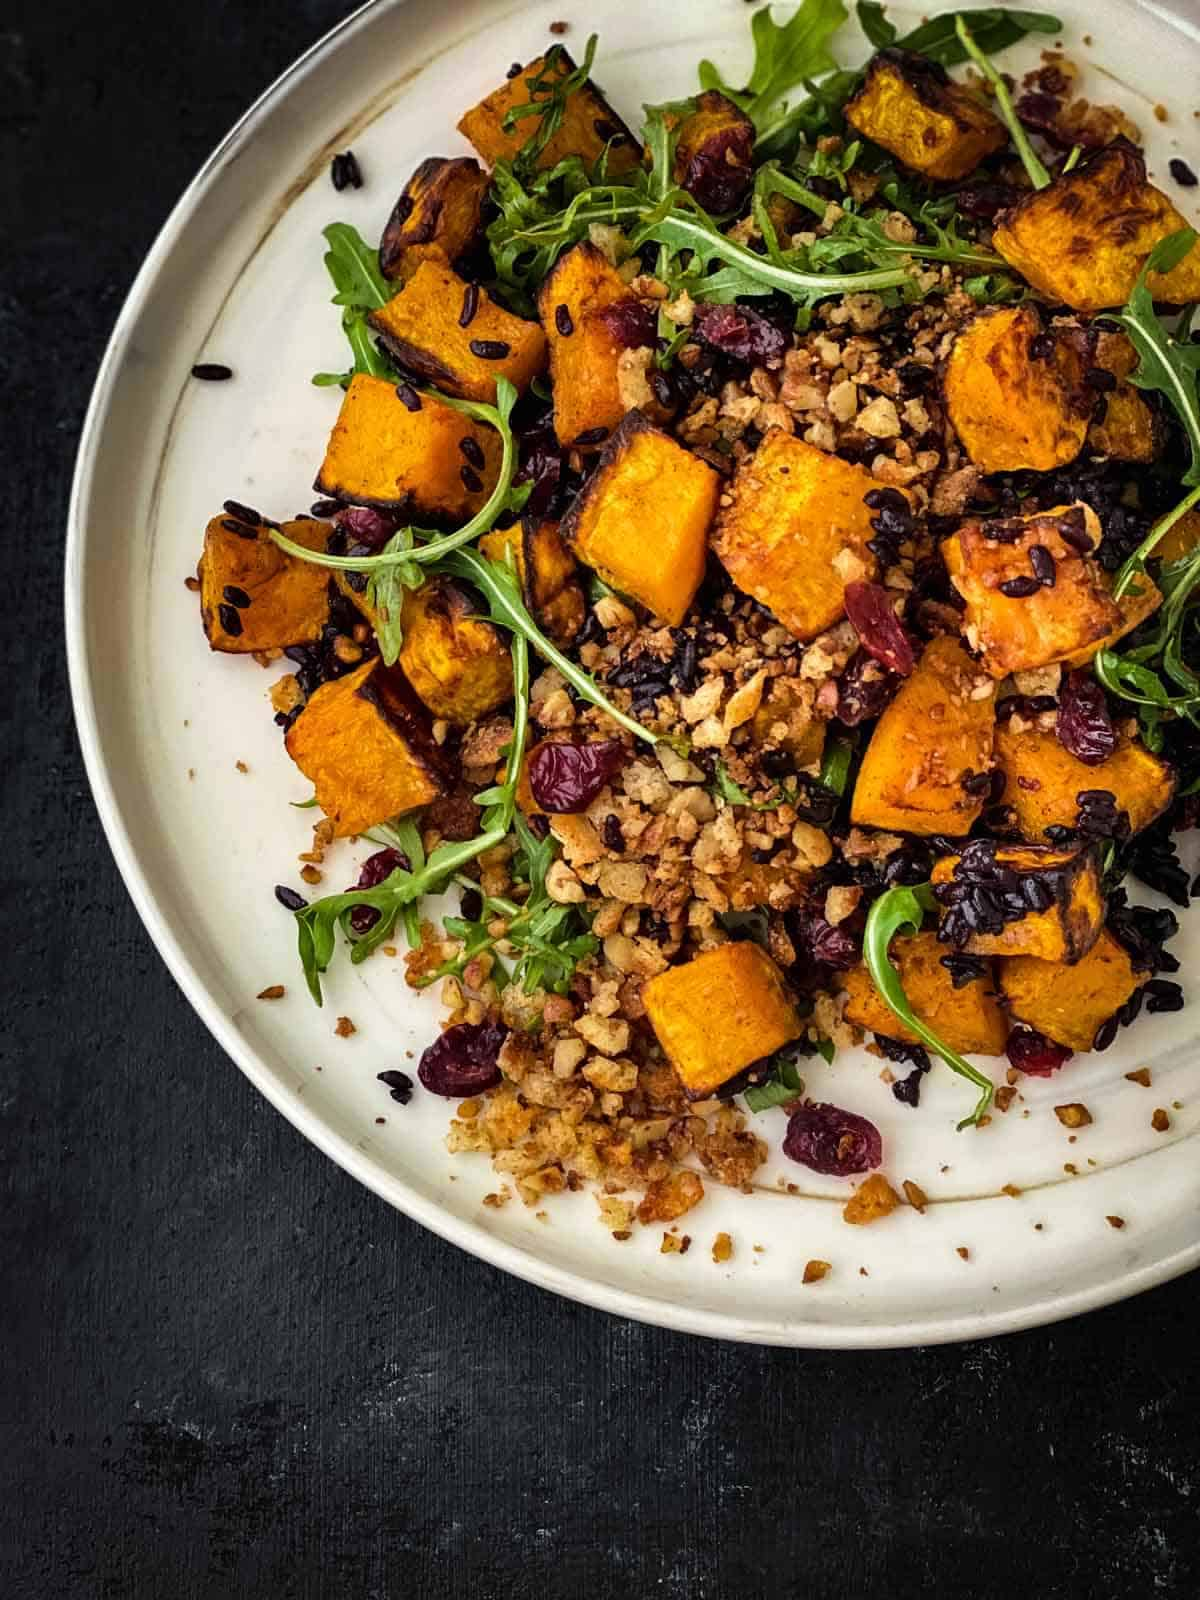 Vegan Salad with Butternut Squash and Cranberries